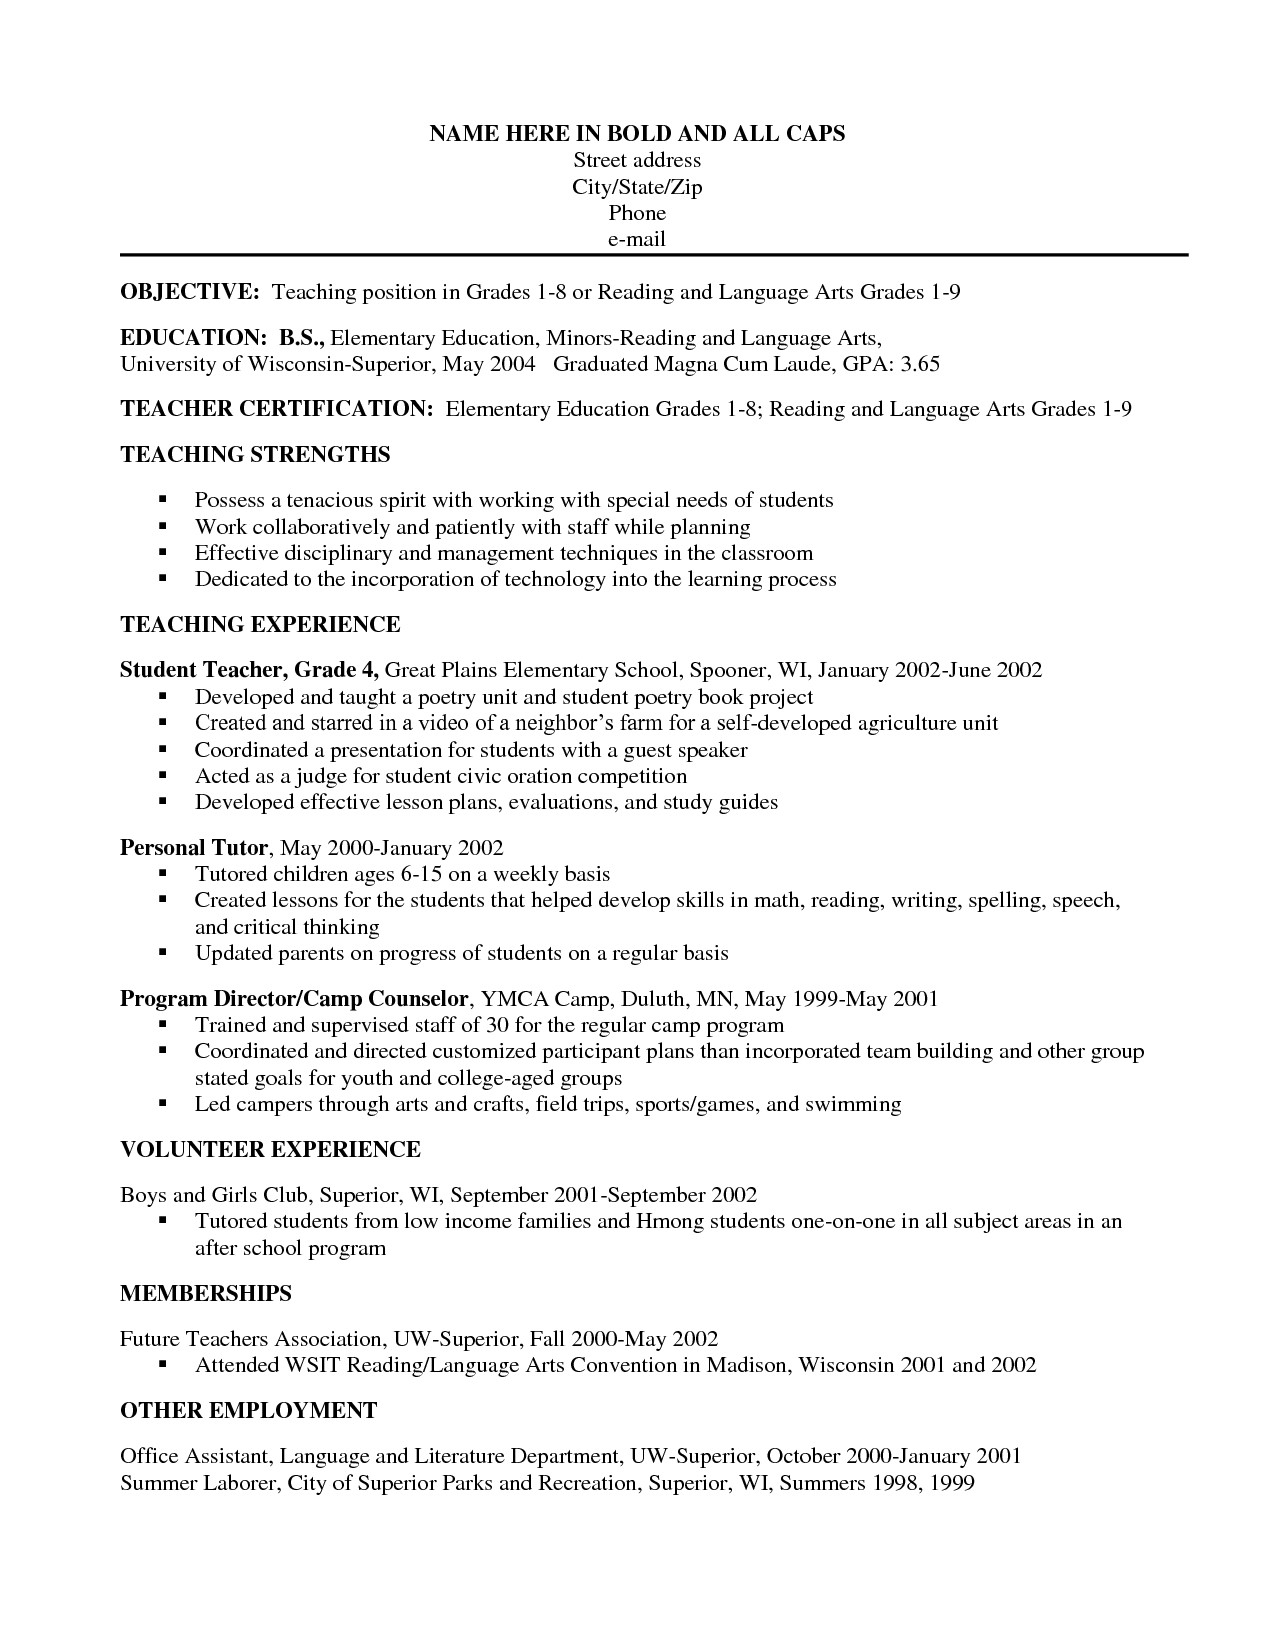 Teacher assistant Resume with No Experience - Teacher assistant Resume with No Experience